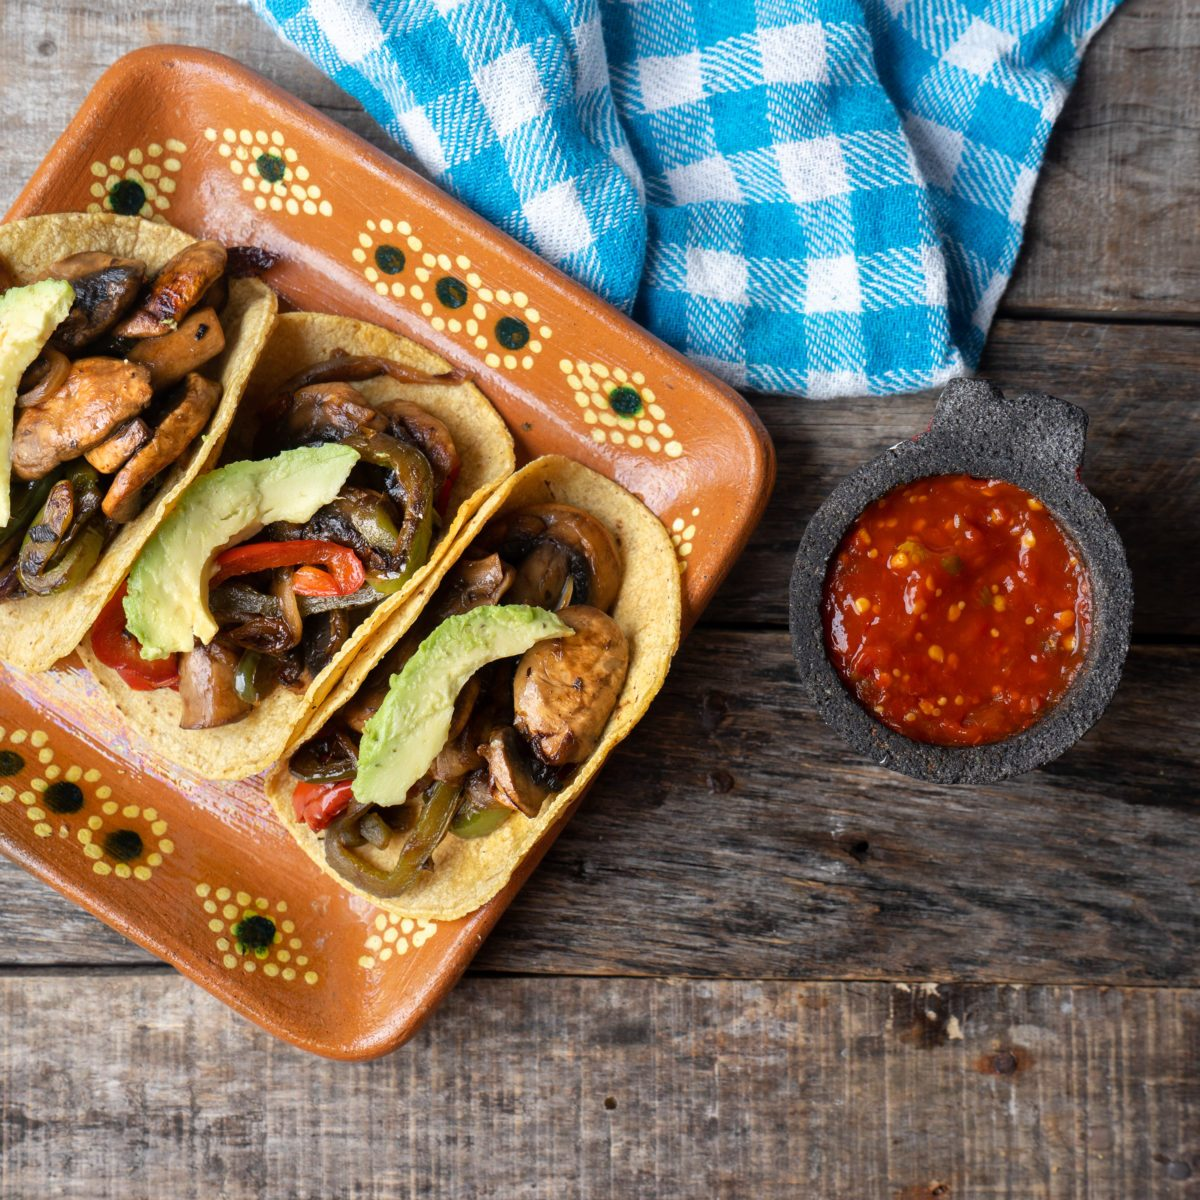 8 Popular Mexican Foods You Actually Won't Find in Mexico